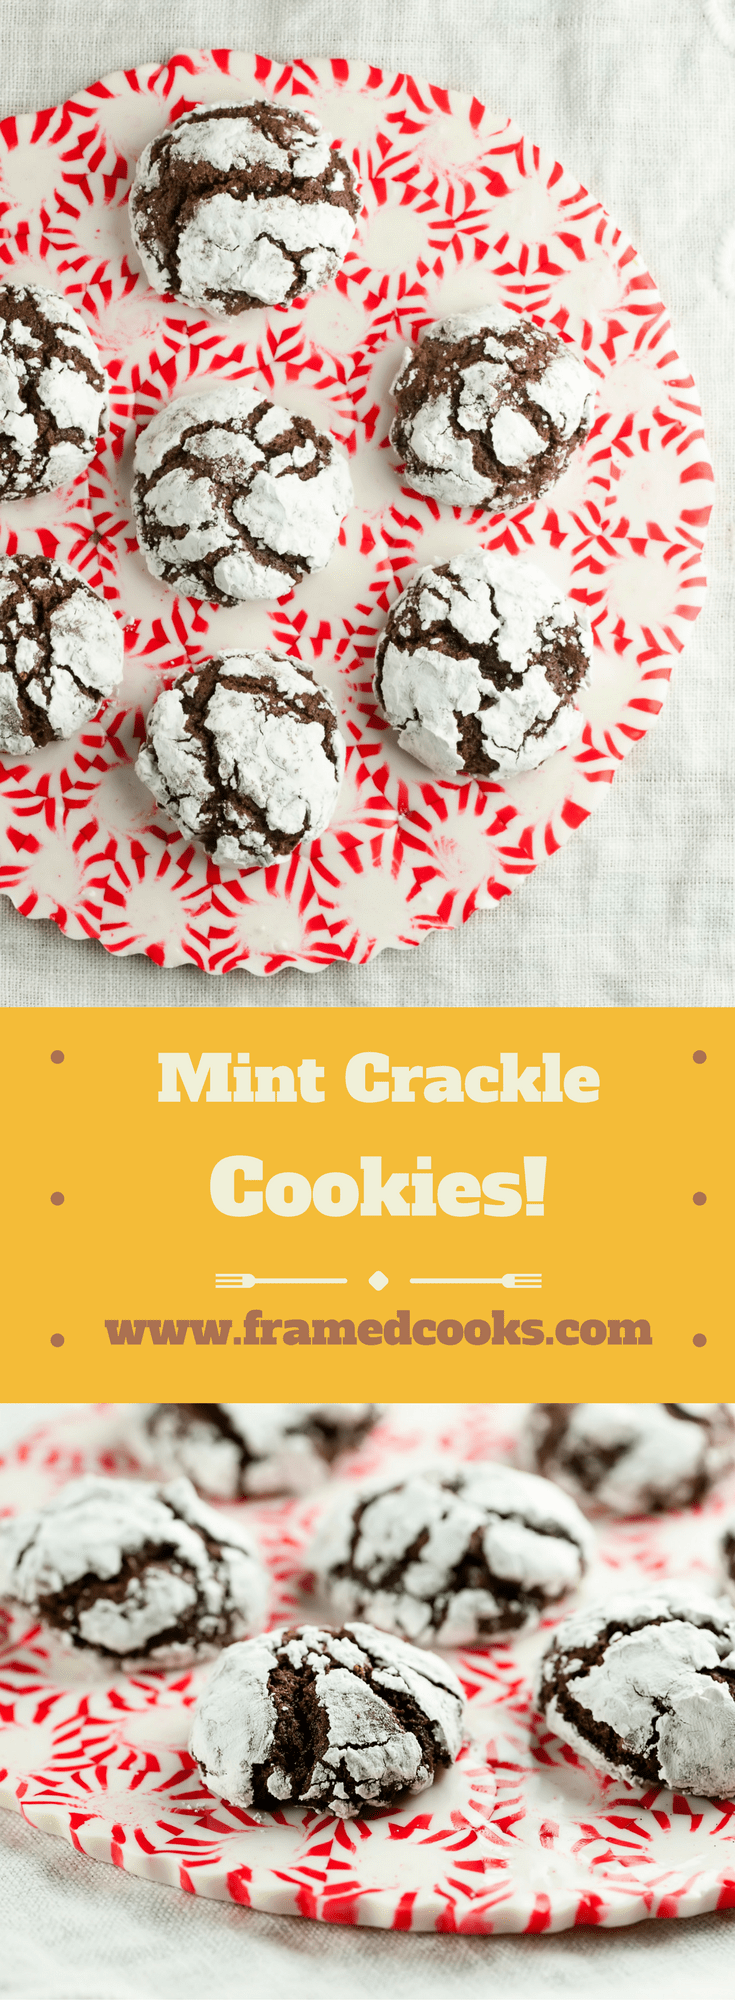 This easy recipe for chocolate mint crackle cookies has all the delicious tastes of the holidays. Powdered sugar sets off the fun crackle design!